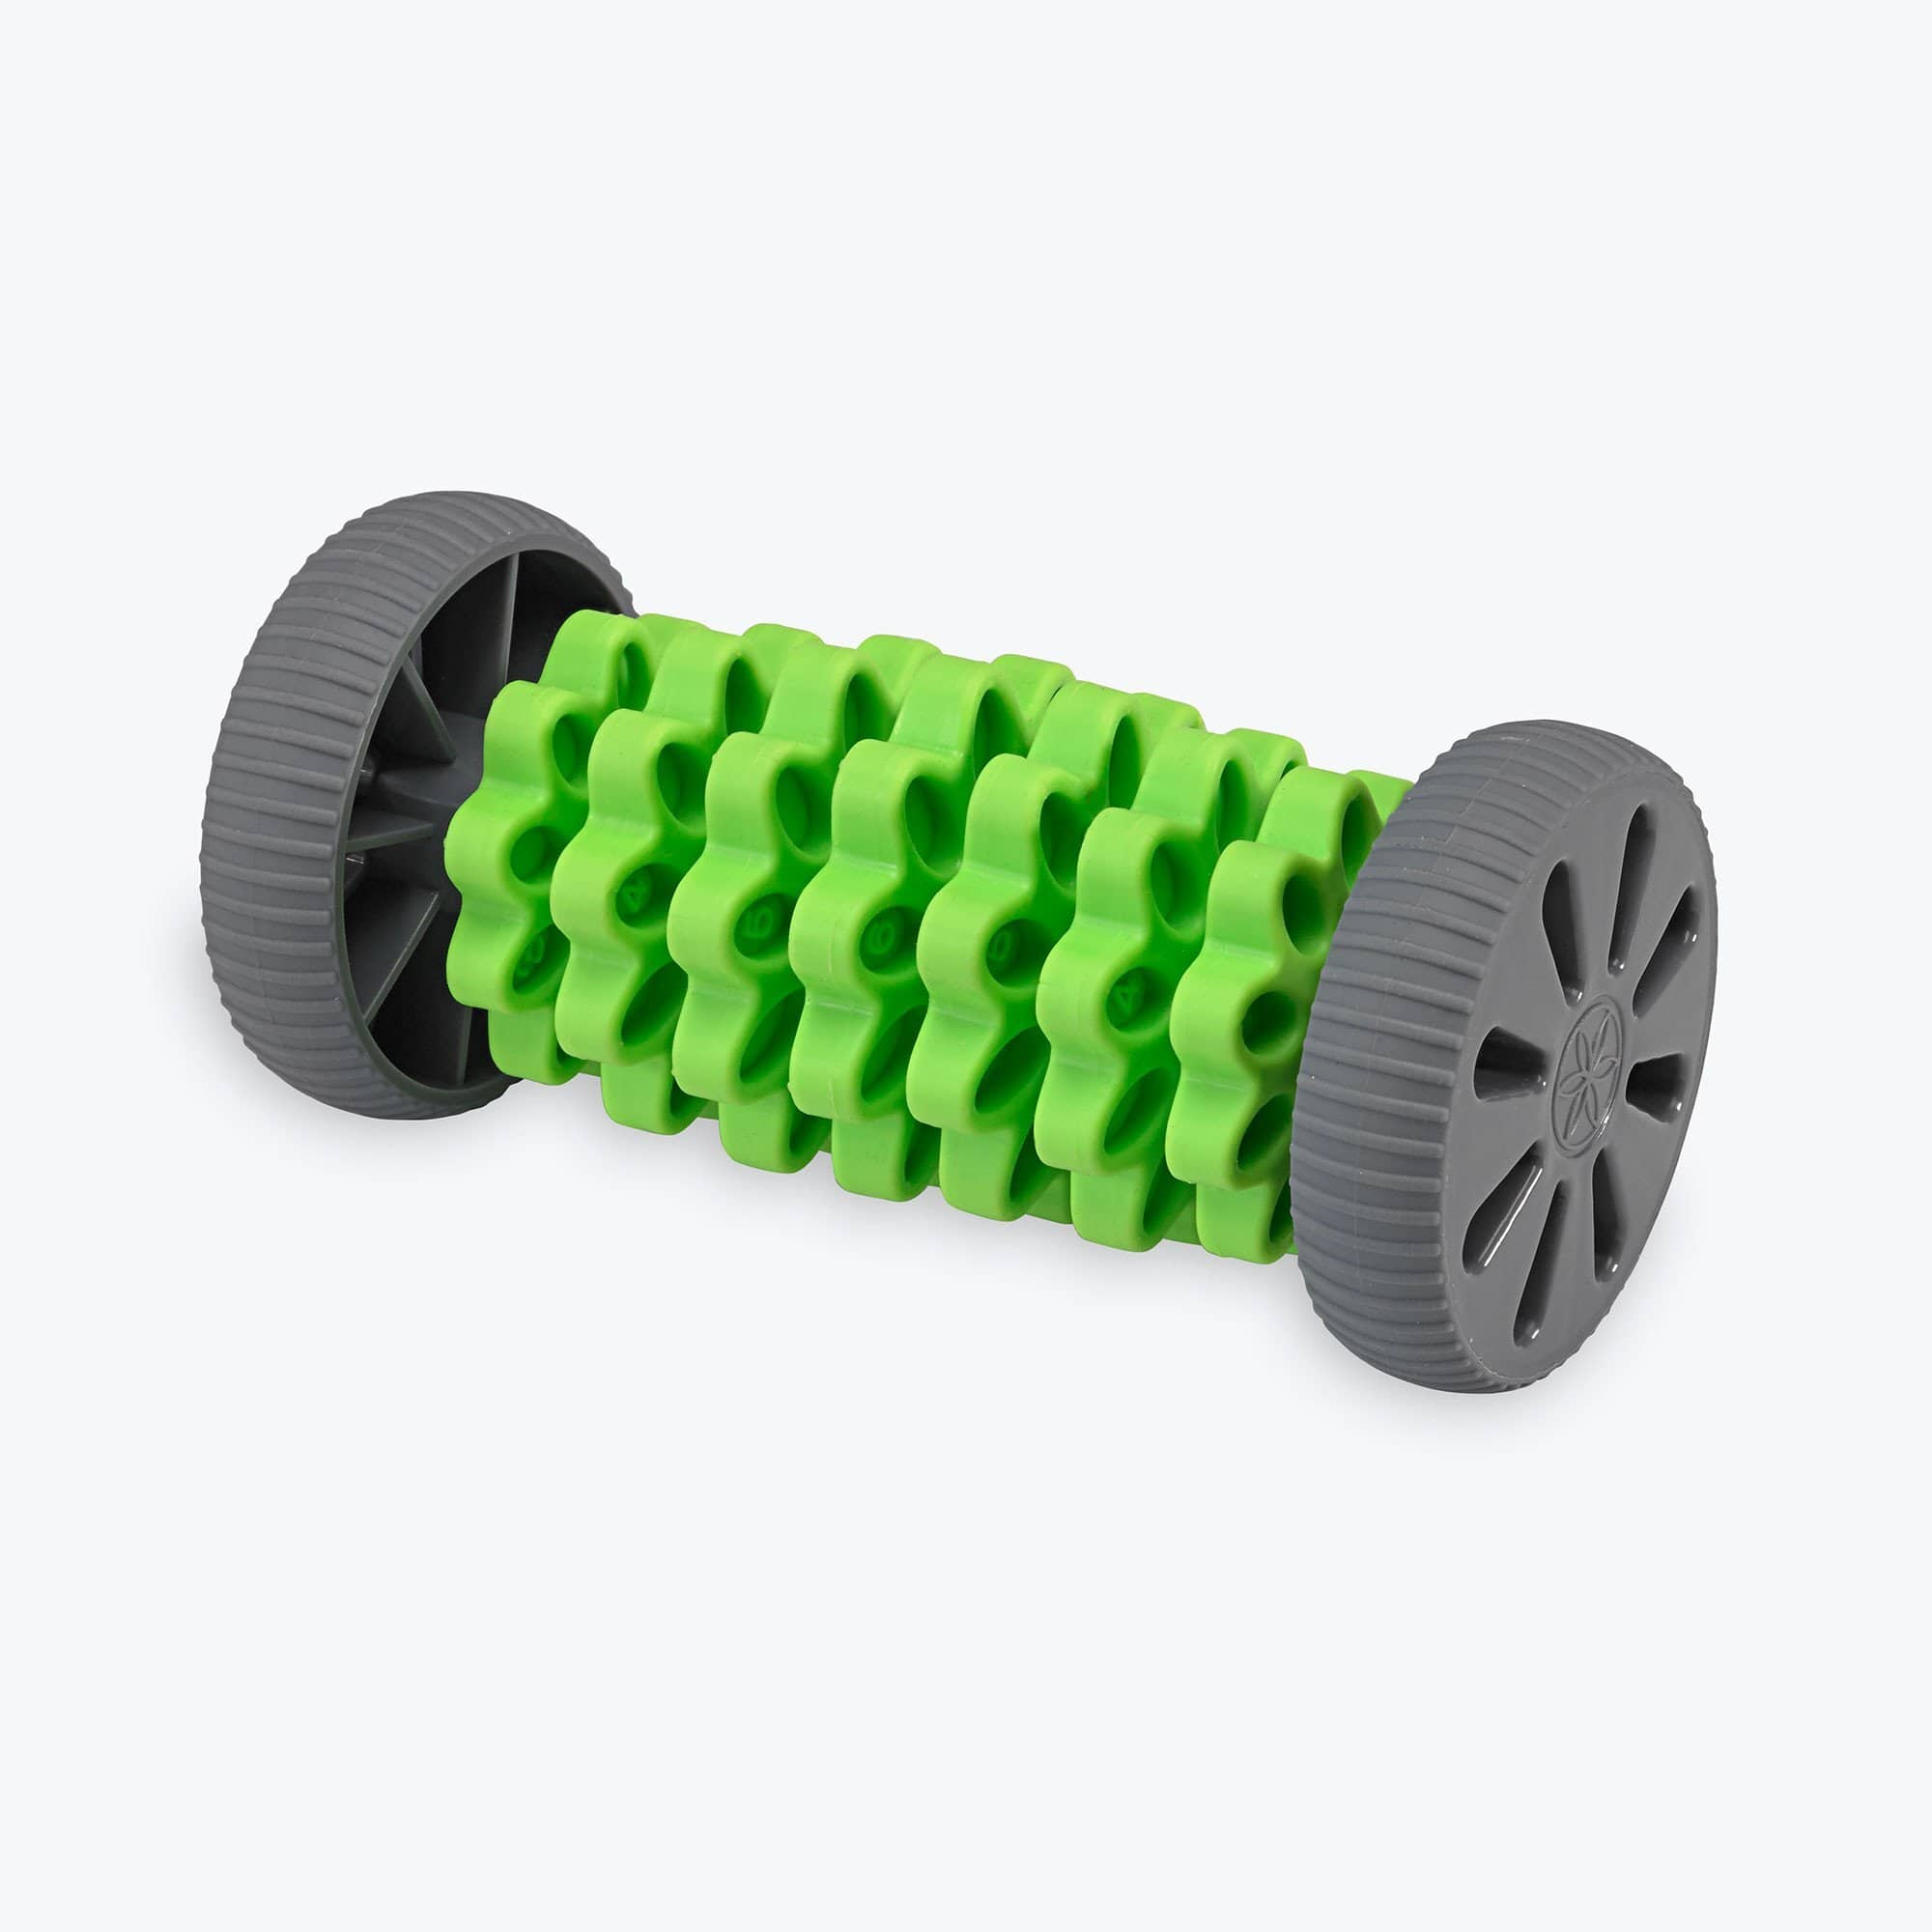 Gaiam Restore Adjustable Foot Roller Exercise Roller